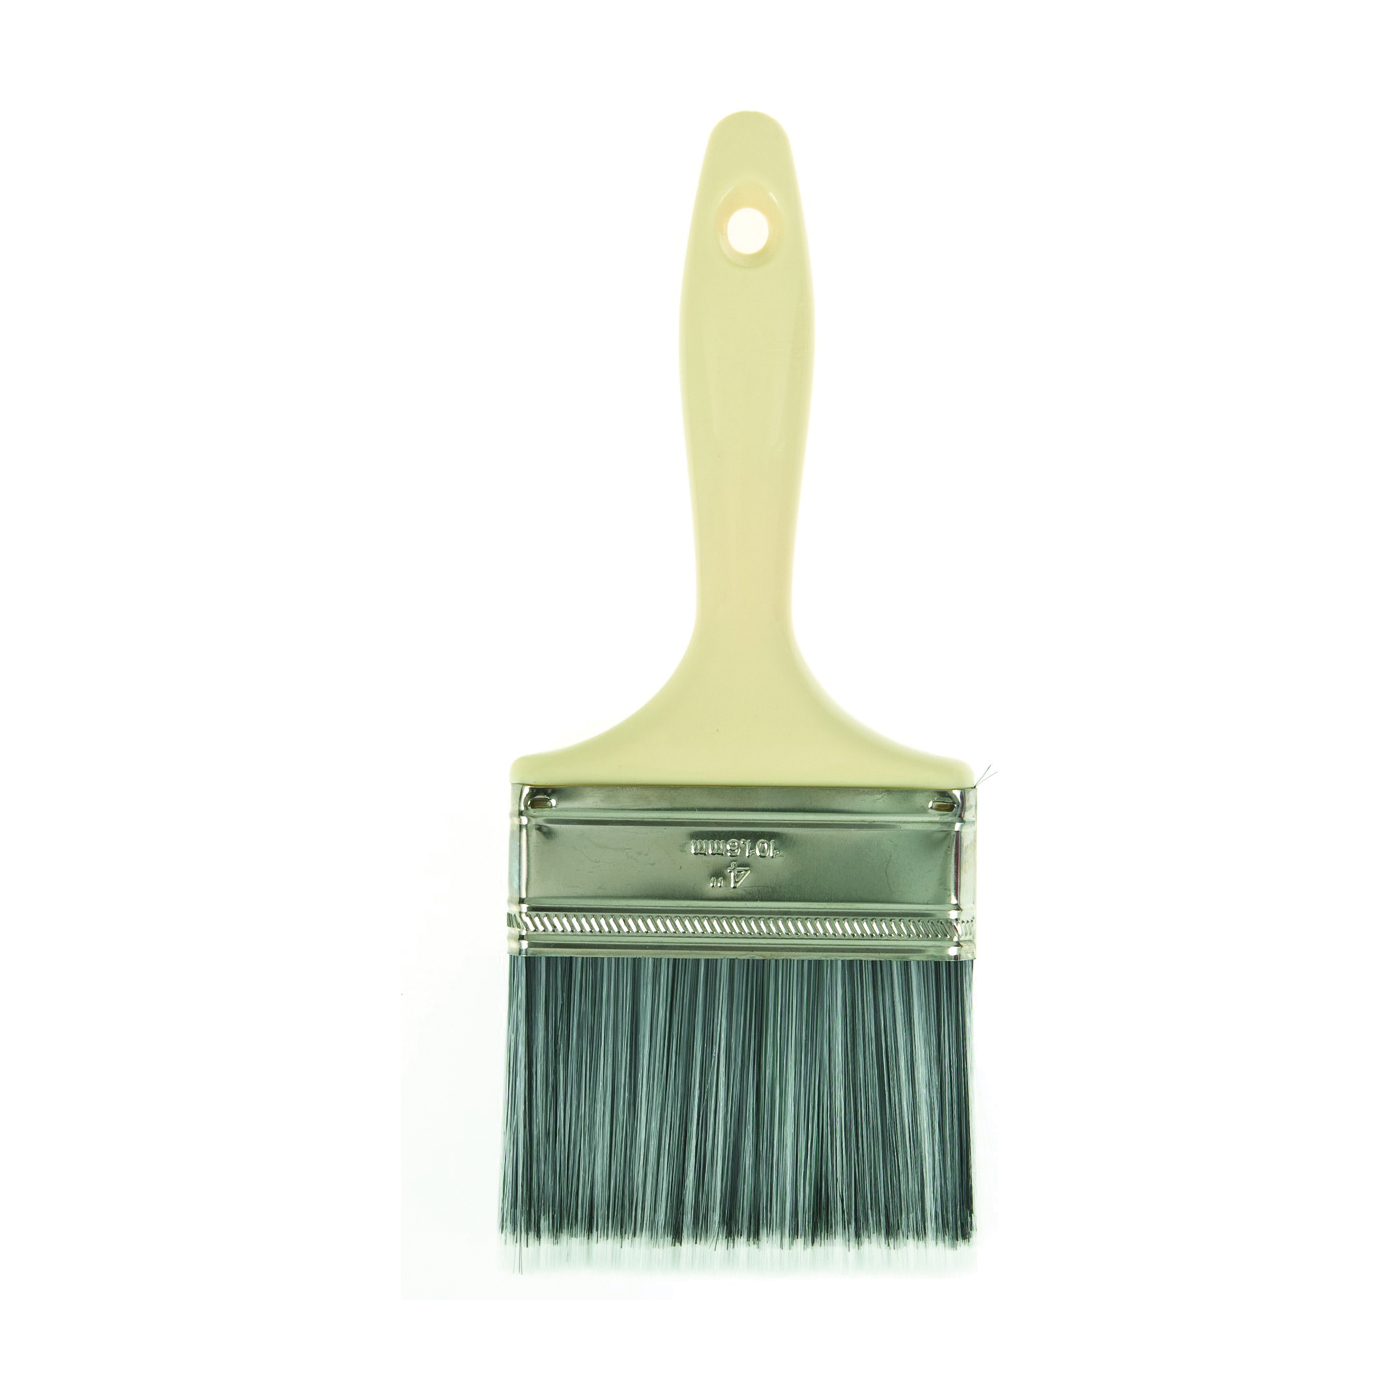 Picture of Linzer 1820-4 Paint Brush, 4 in W, 2-3/4 in L Bristle, Varnish Handle